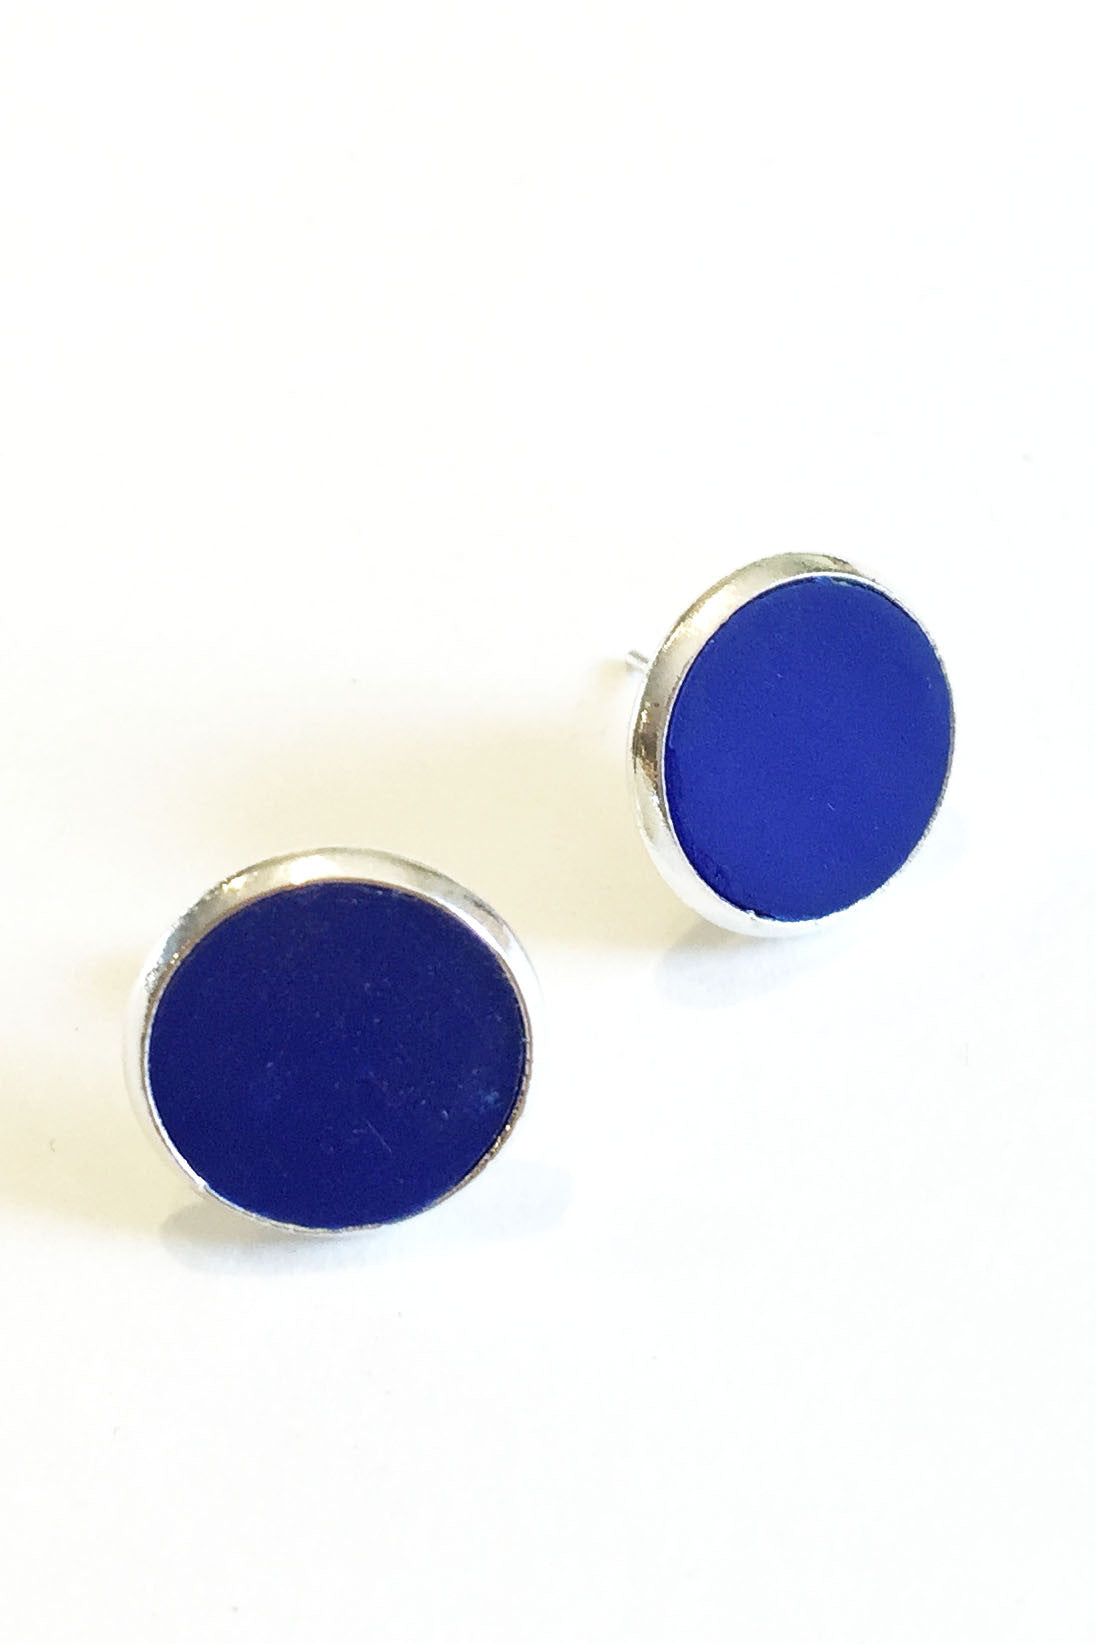 Handmade in Ottawa Workshop's own colour pop polymer clay earrings in royal blue